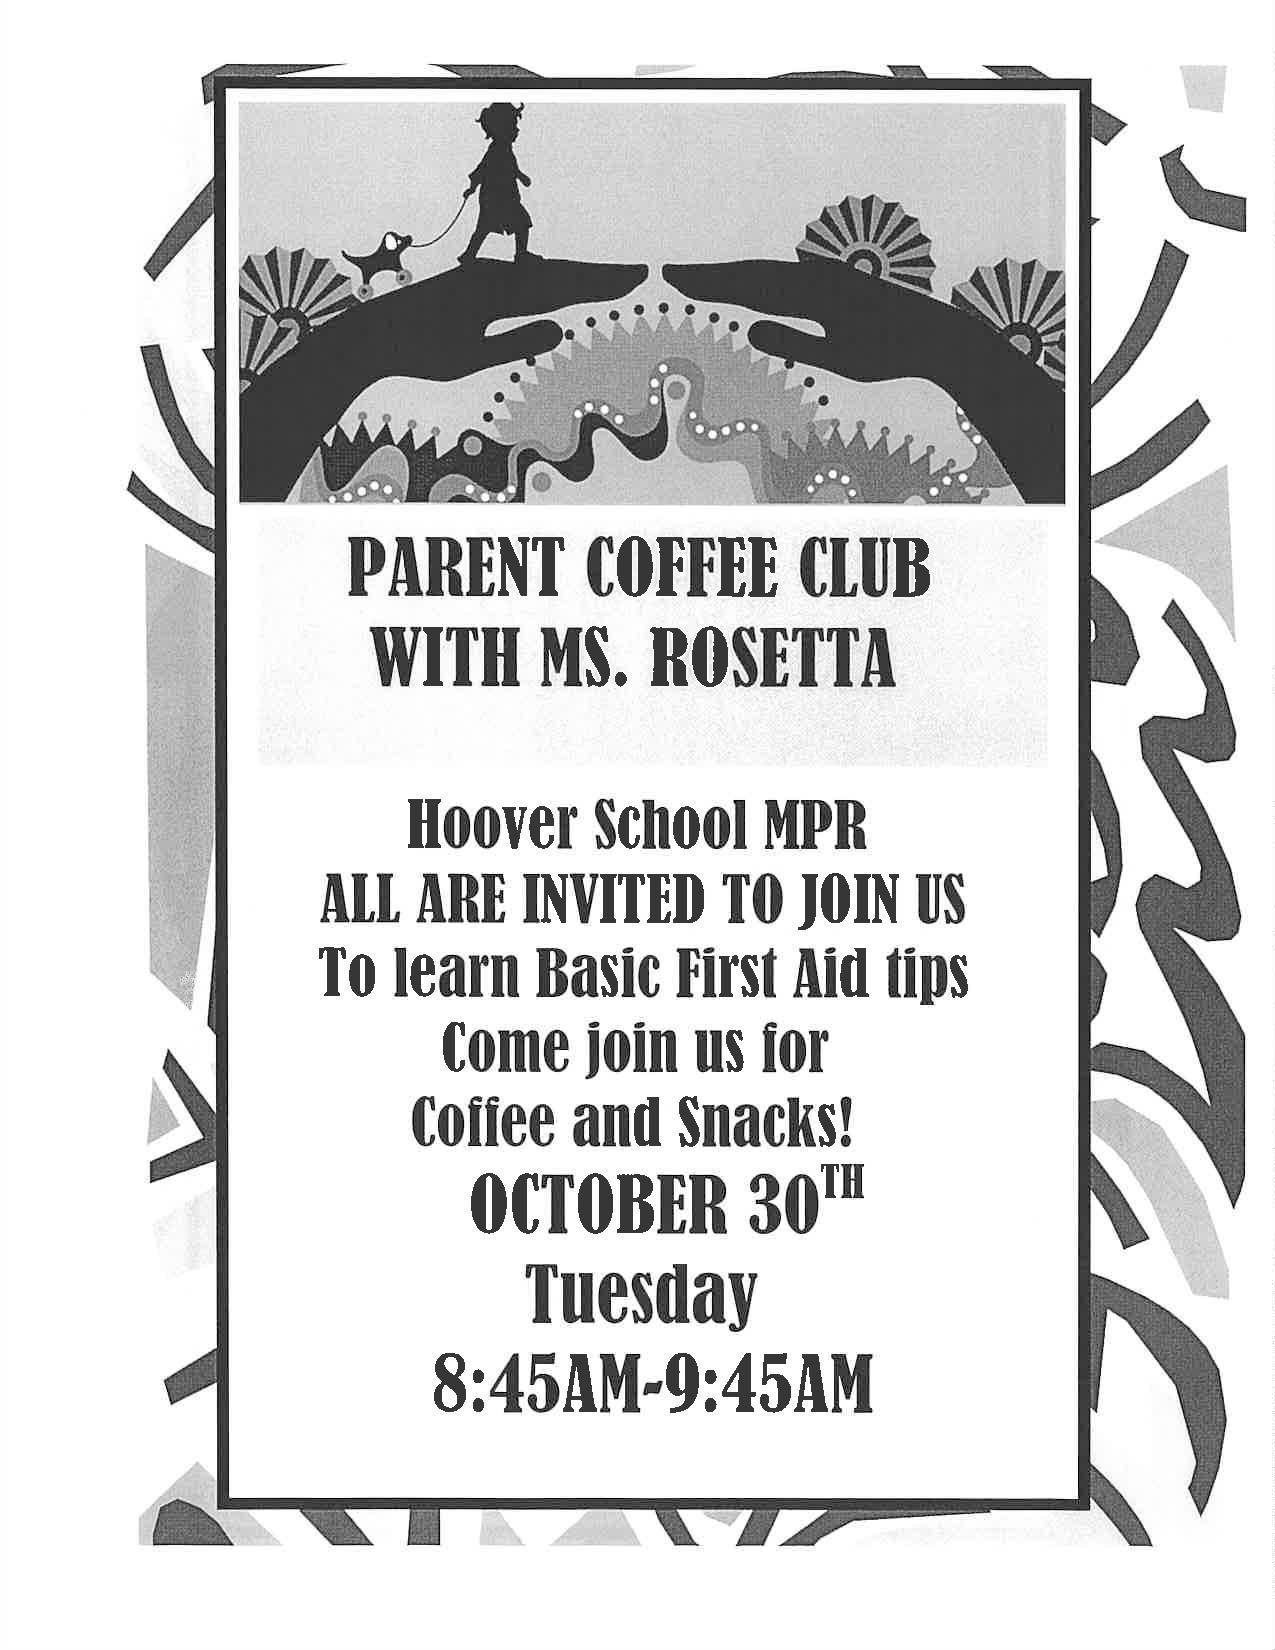 Coffee Club with Ms. Rosetta on October 30 at 8:45am